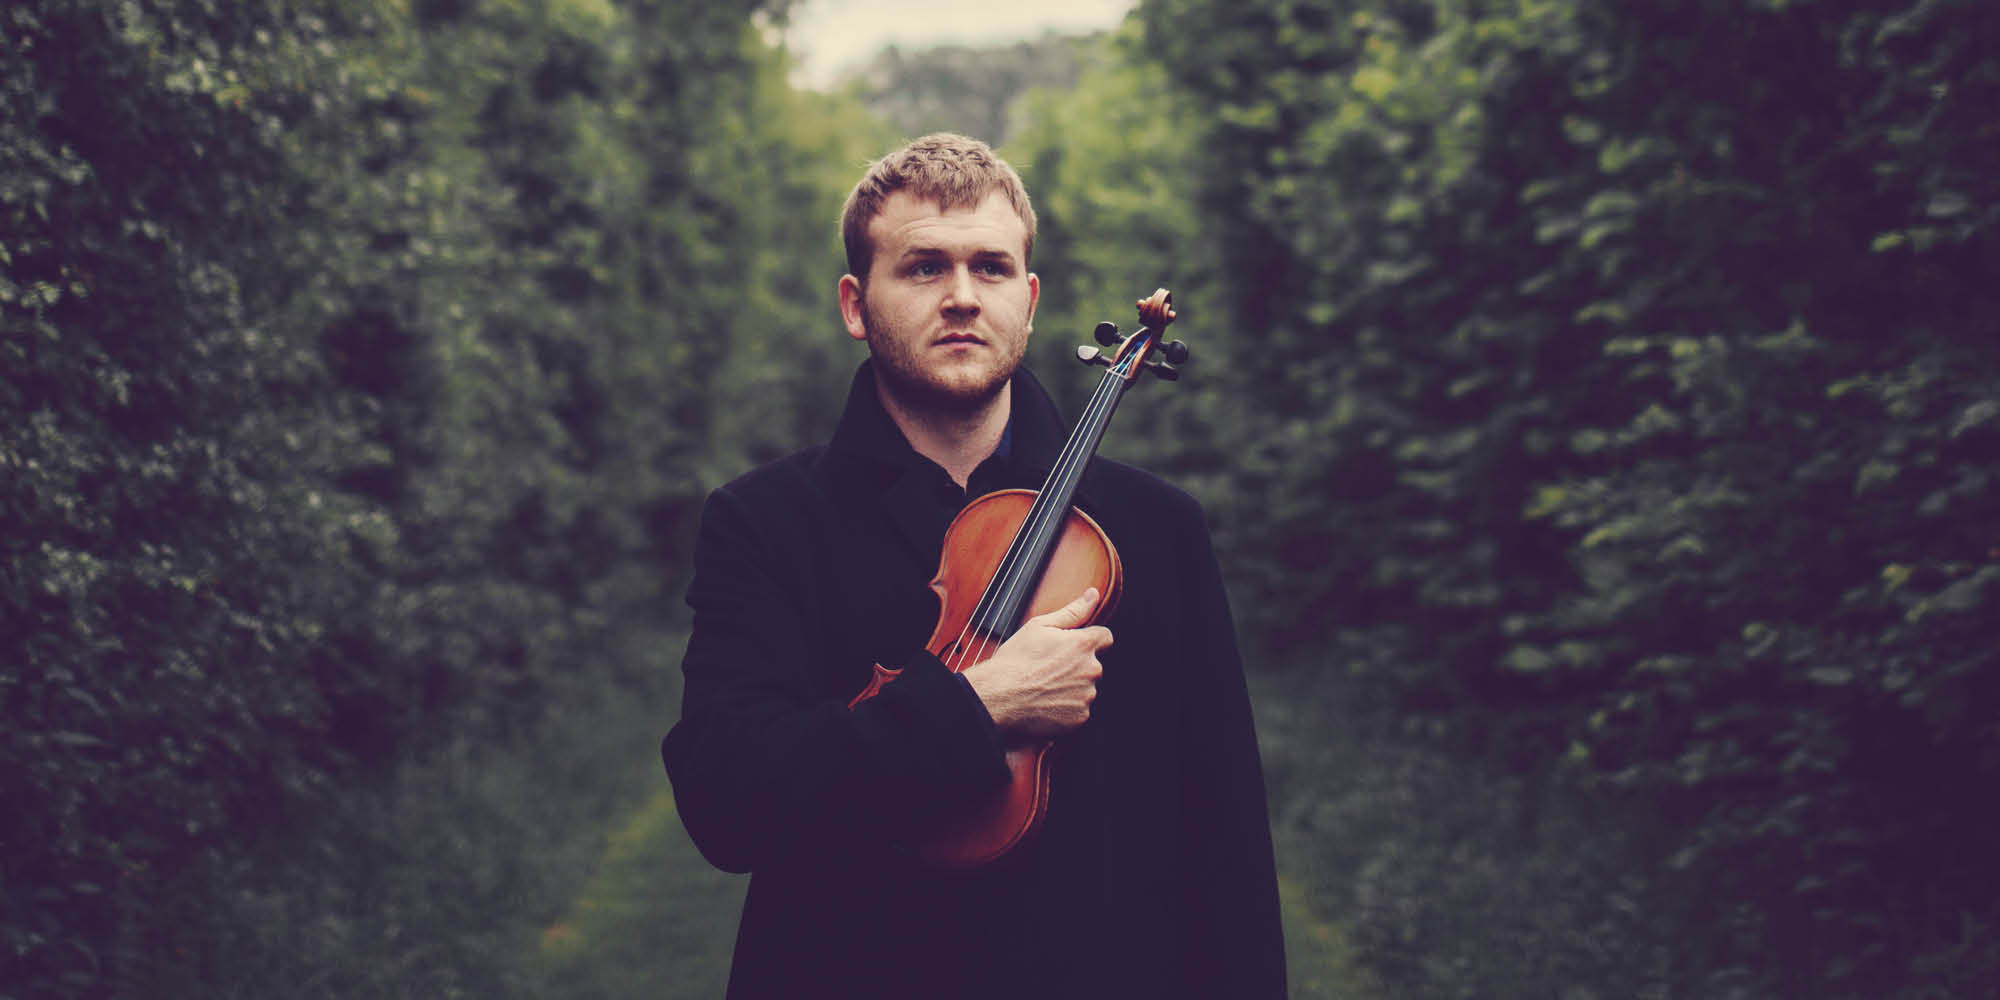 Sam Sweeney: The Unfinished Violin